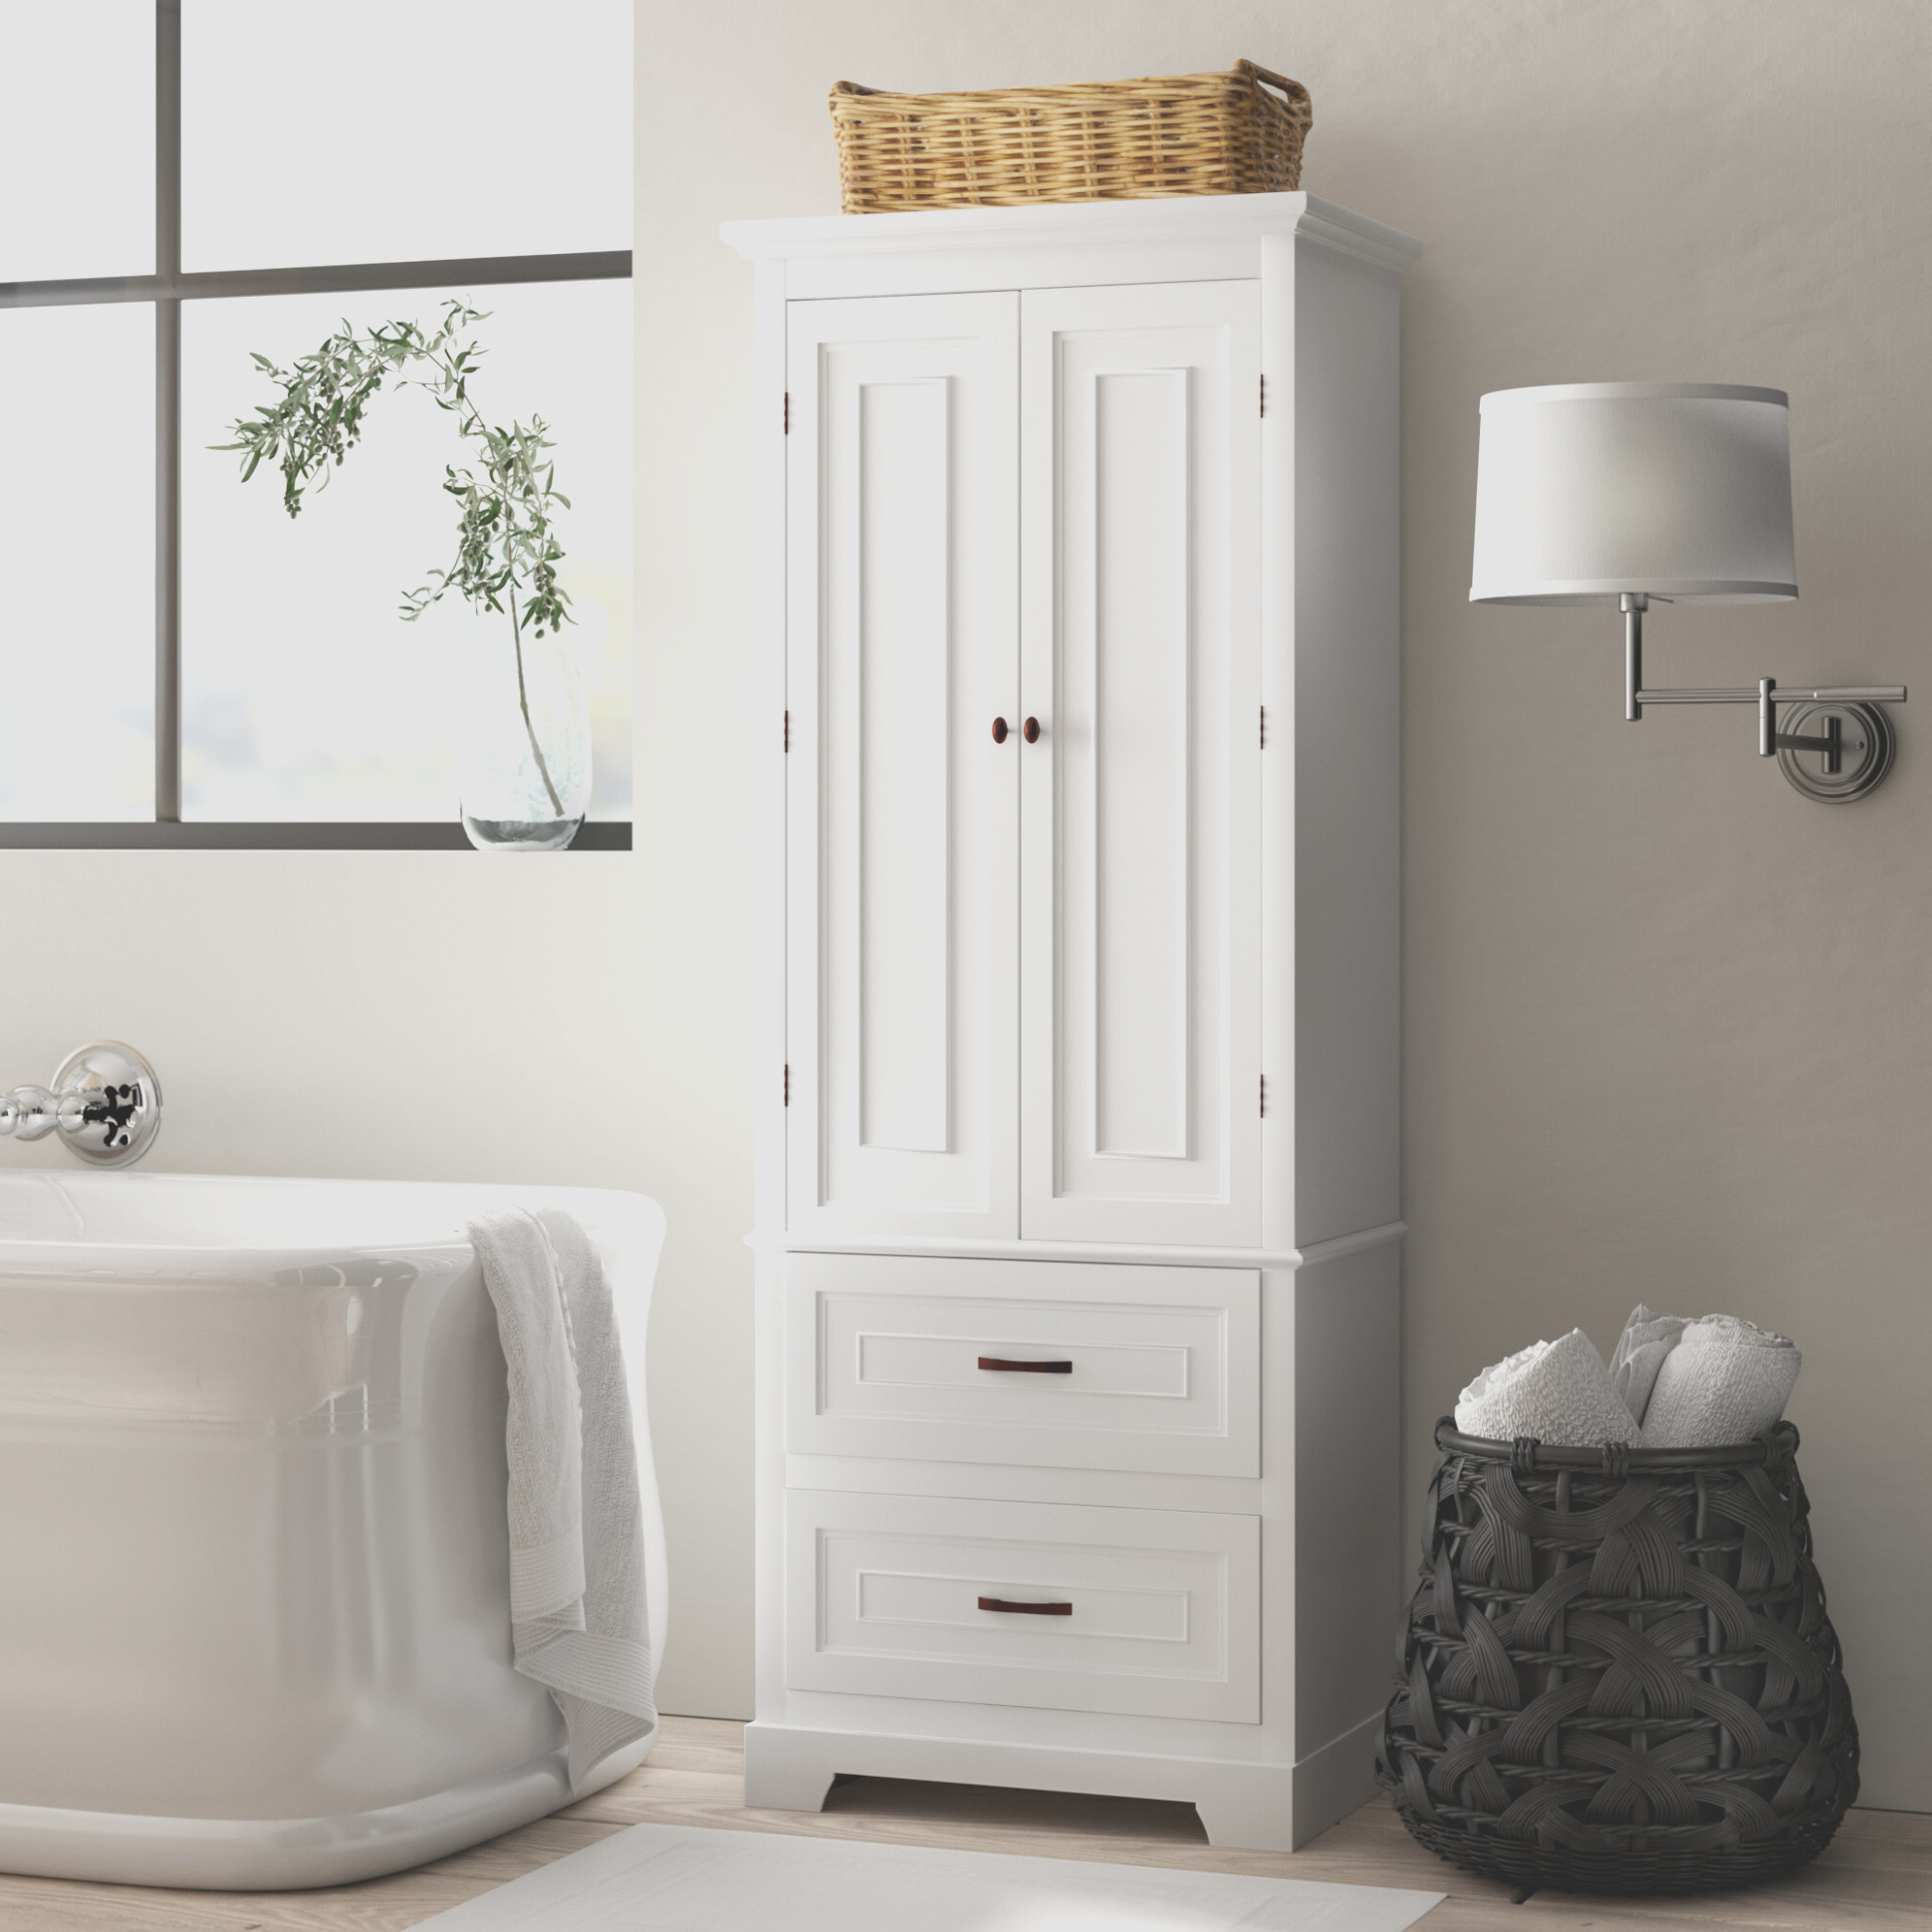 Wayfair Bathroom Linen Cabinets